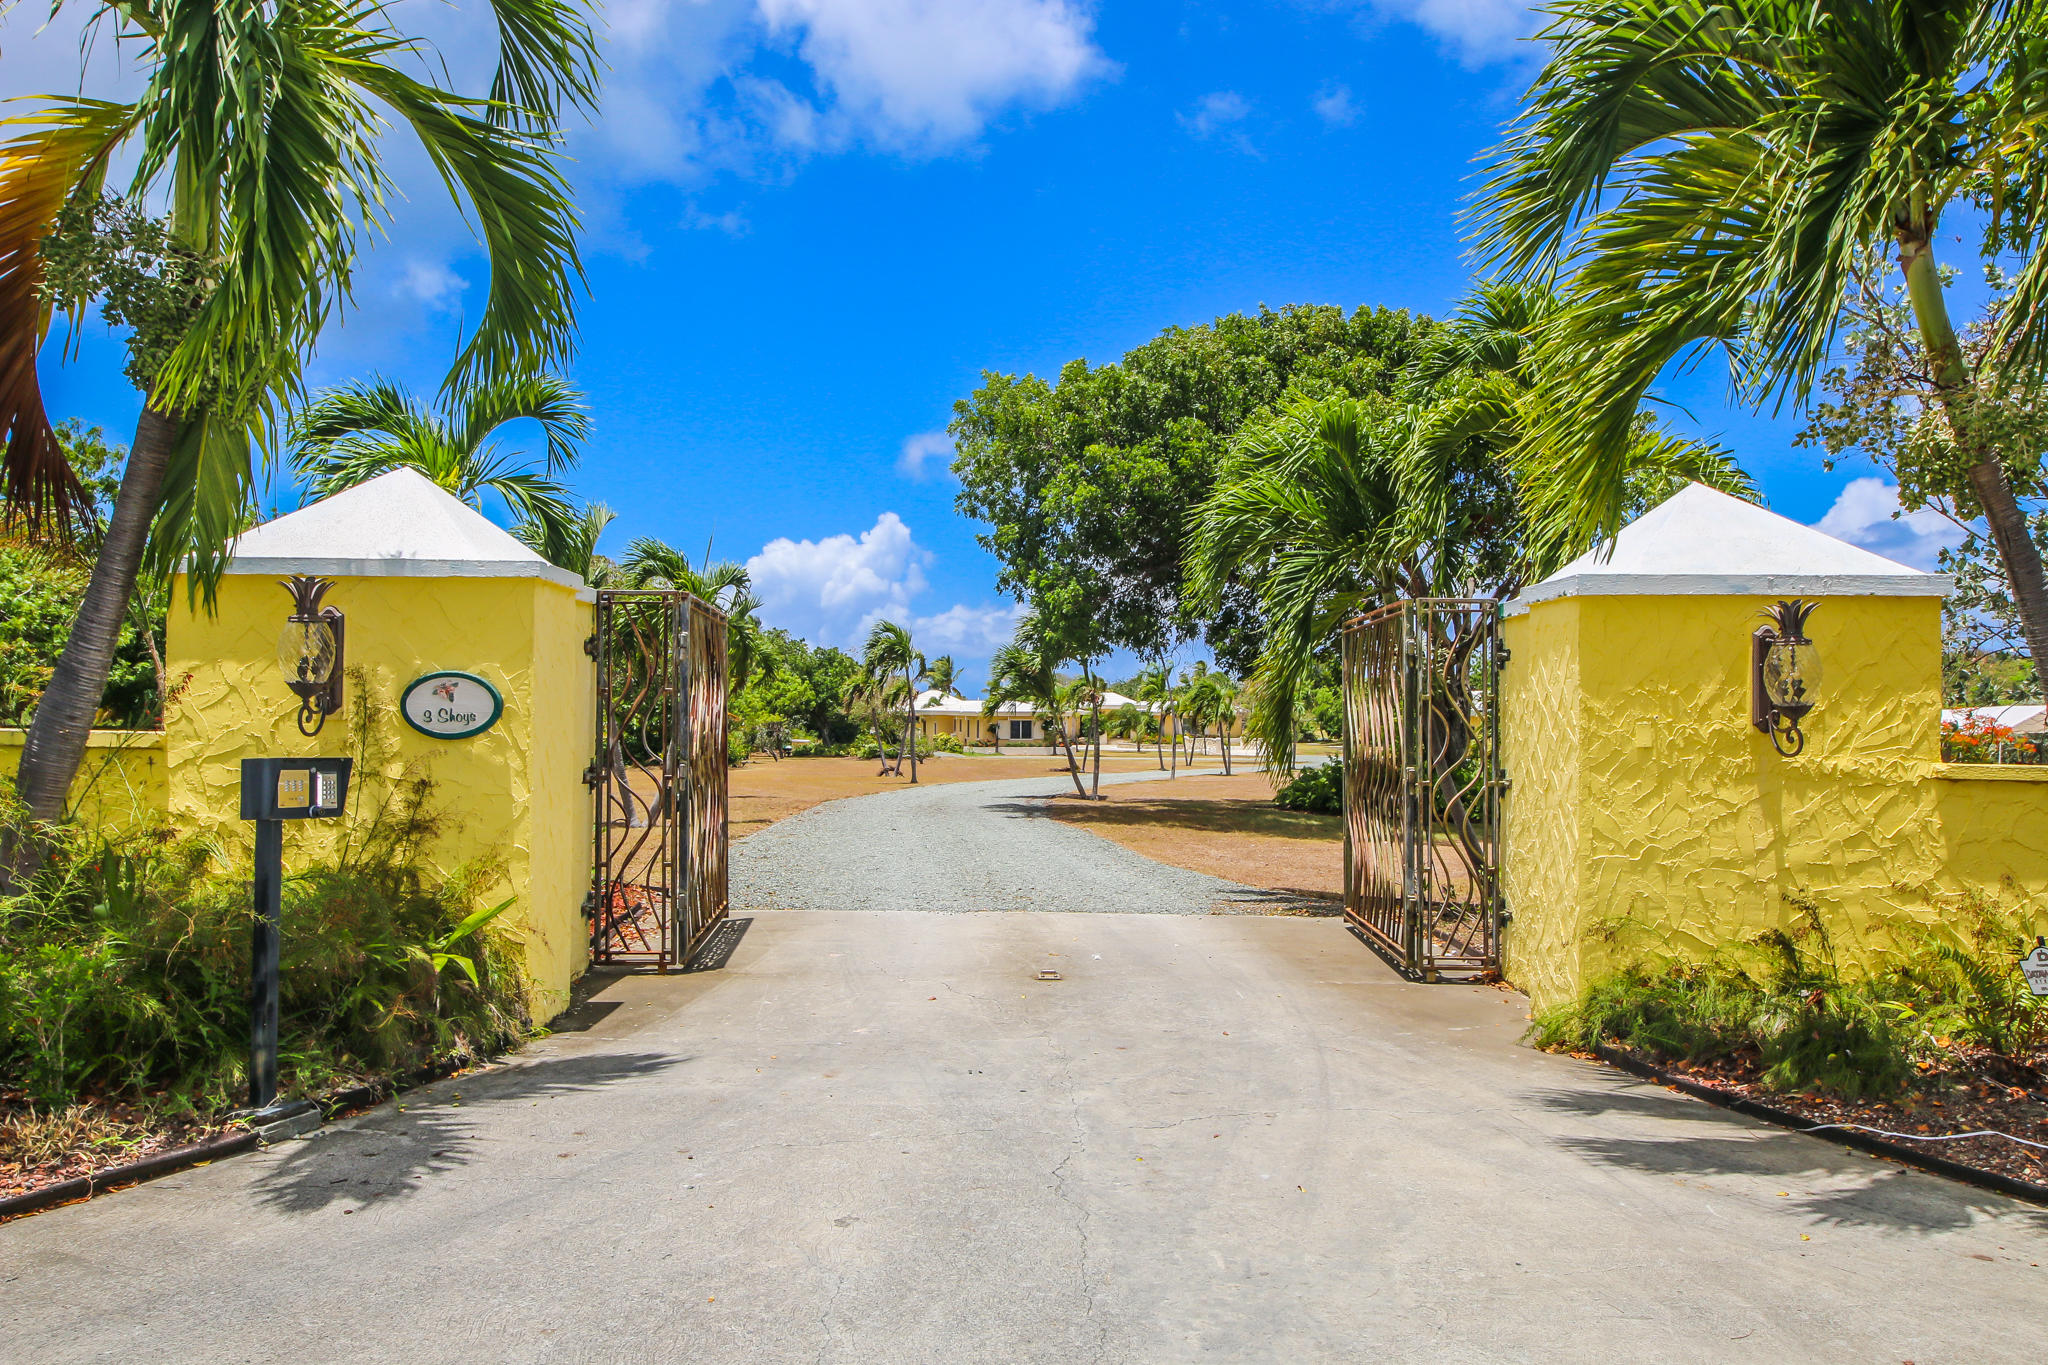 Additional photo for property listing at 3 & 10 Shoys (The) EA 3 & 10 Shoys (The) EA St Croix, Virgin Islands 00820 United States Virgin Islands